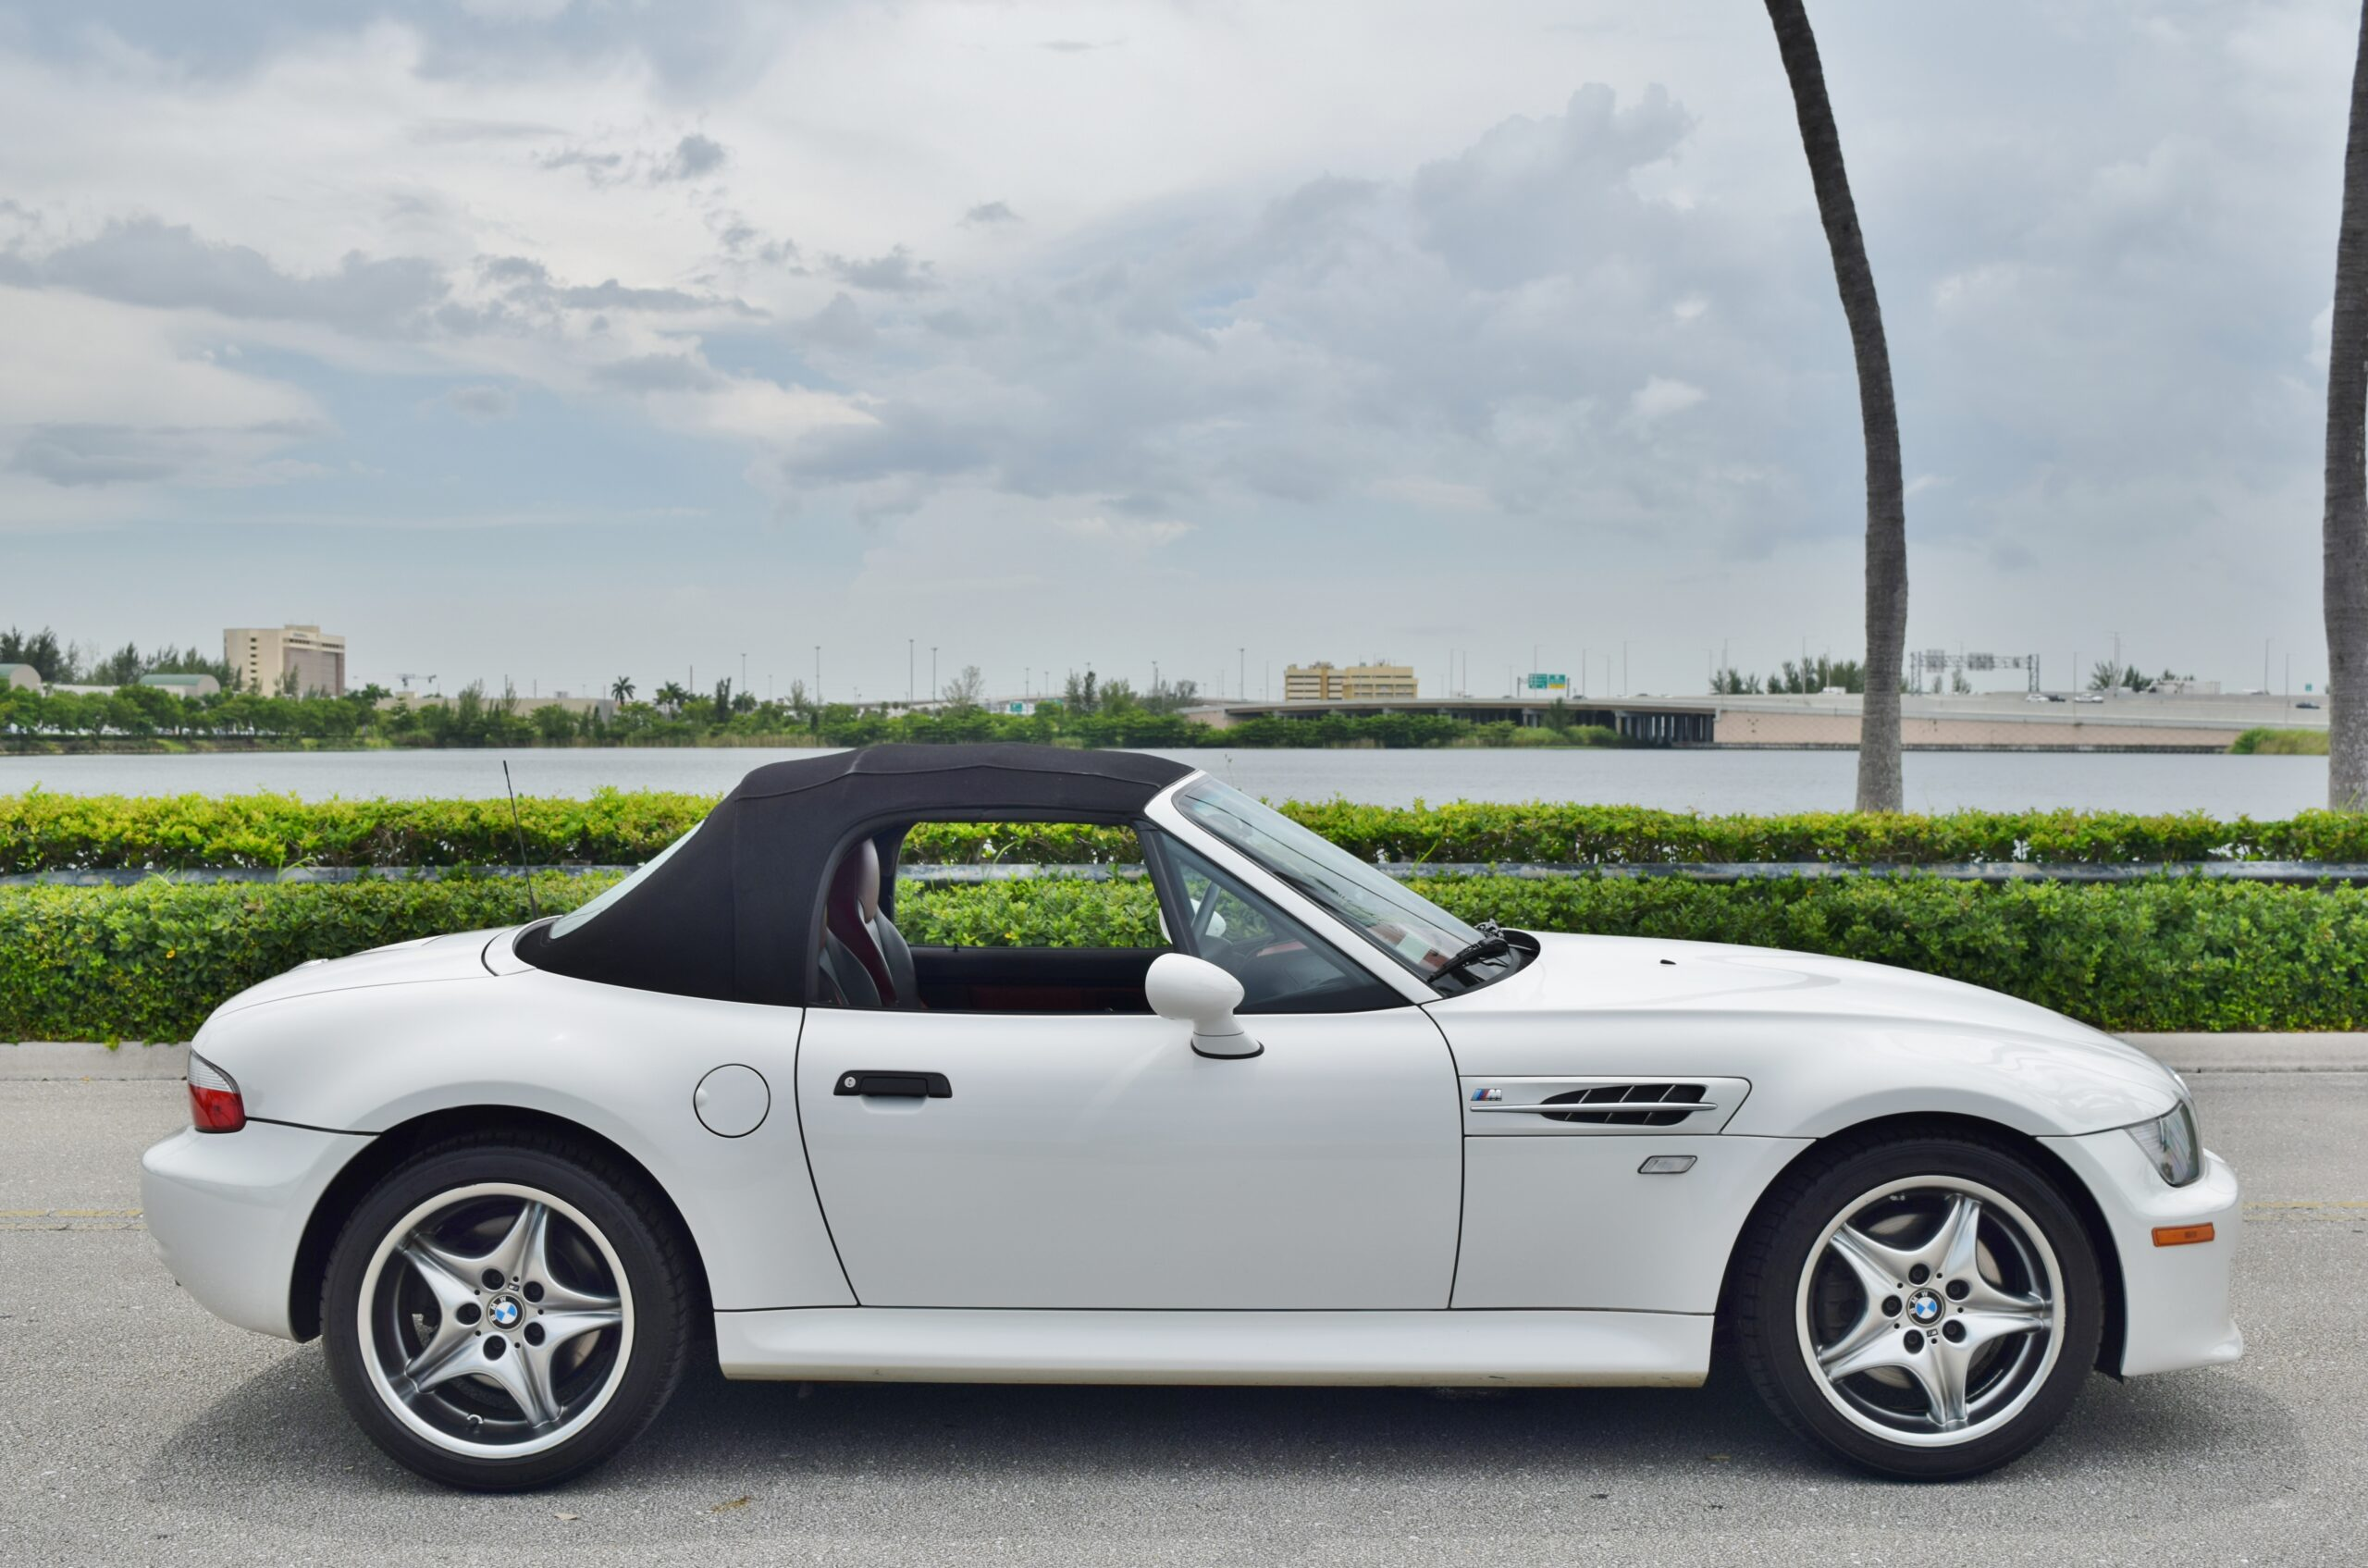 2002 BMW M Roadster & Coupe Last year Z3M Roadster 2 Owner- Only 40K miles – Rare White/Red color combination- 4 Keys-Books/Manuals